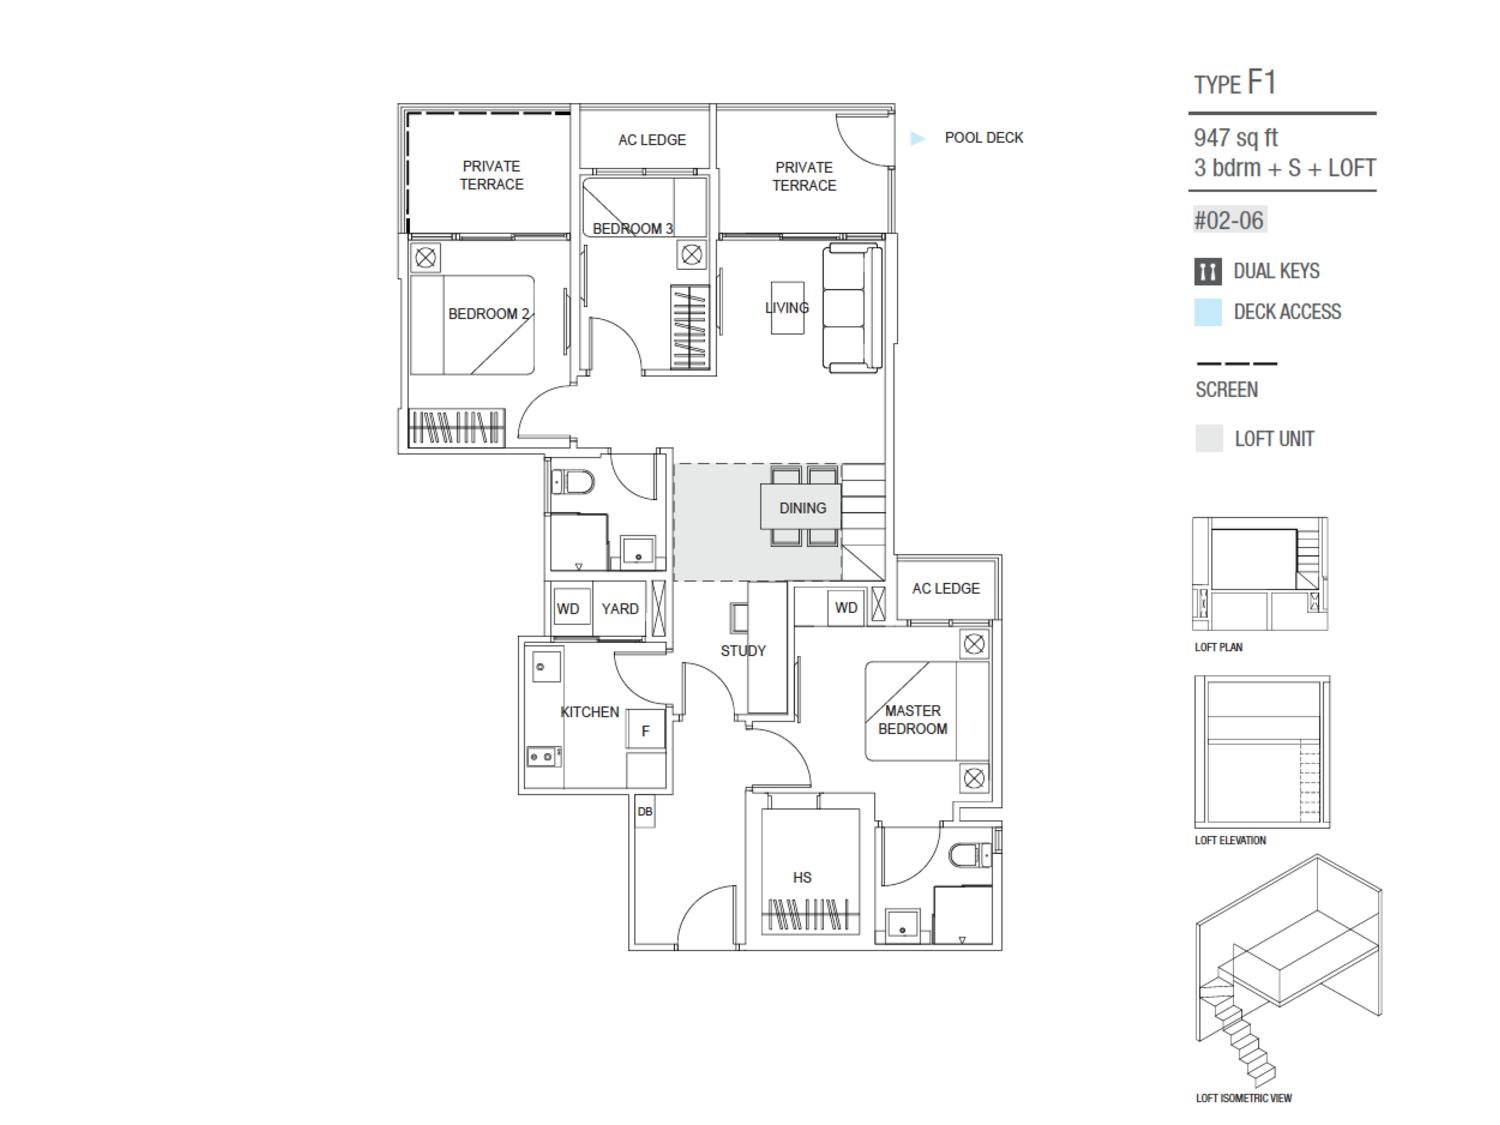 3 Bedroom Study Dk moreover Studio Apartments Downtown Portland Oregon as well Anant Raj Estate Villas as well Homeland Heights Floor Plan Mohali Chandigarh Npxid R28048 additionally The Mansions At Acqualina Floor Plans. on penthouse floor plans